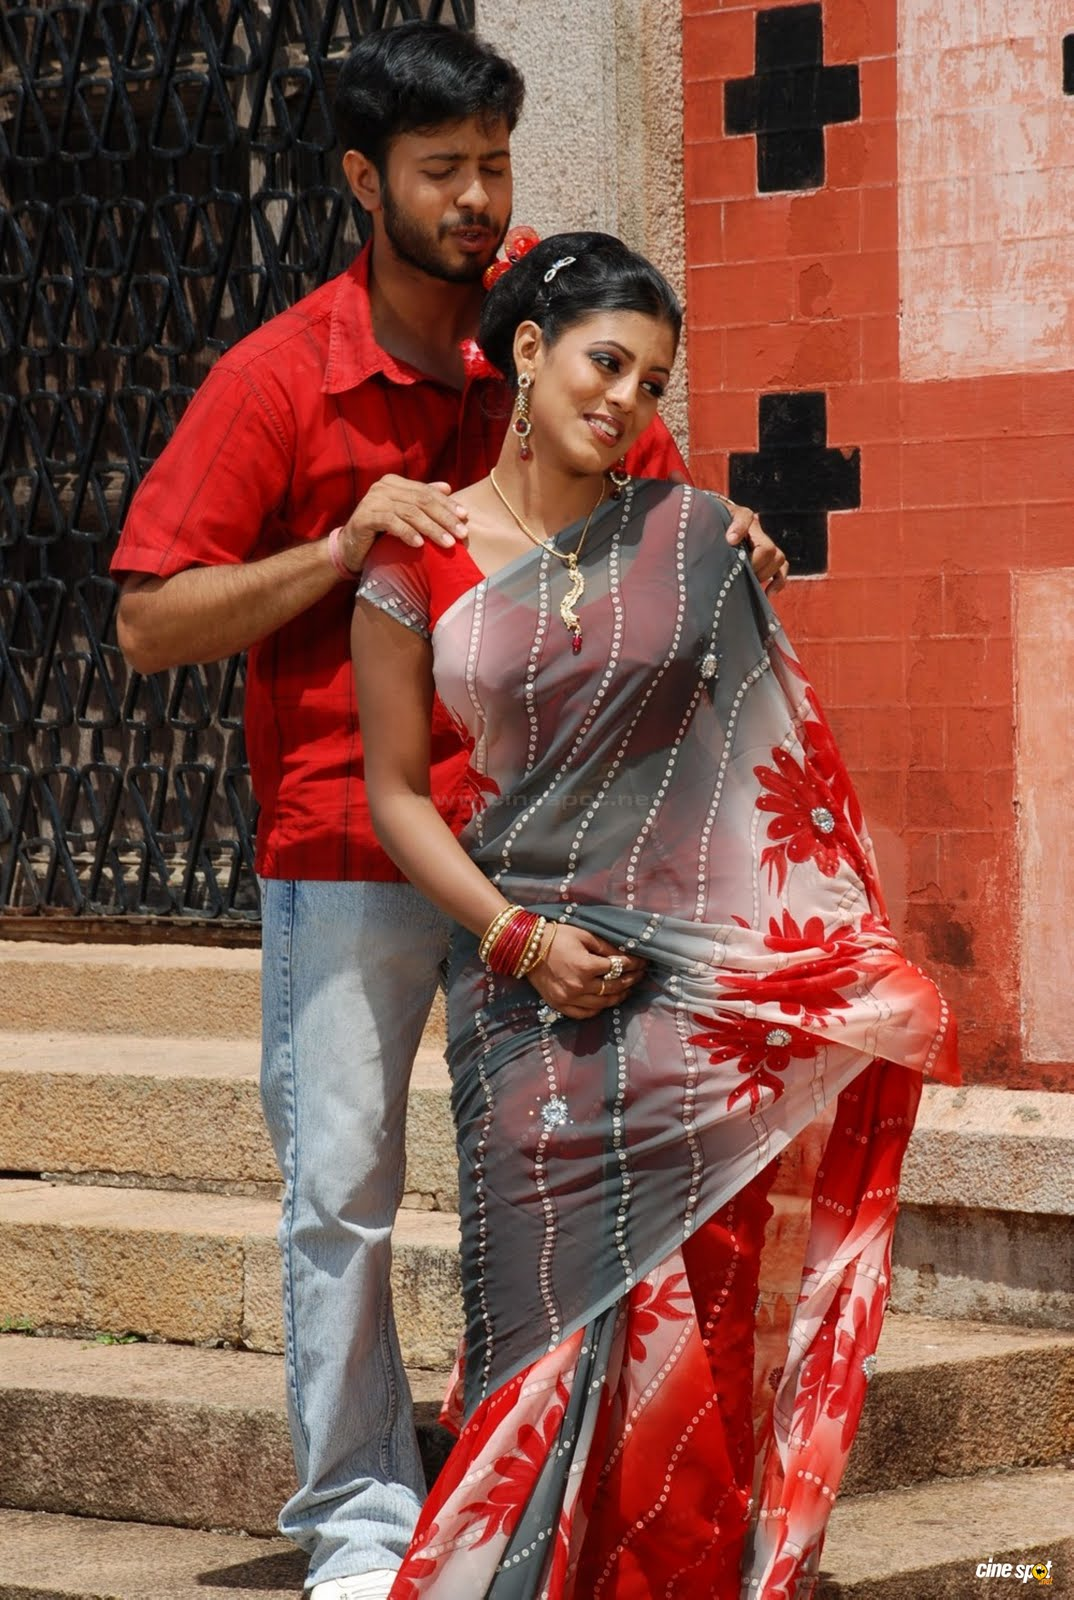 Padagasalai movie stills,photos,Padagasalai movie stills,Padagasalai movie pics,Padagasalai movie gallery stills,Padagasalai movie images